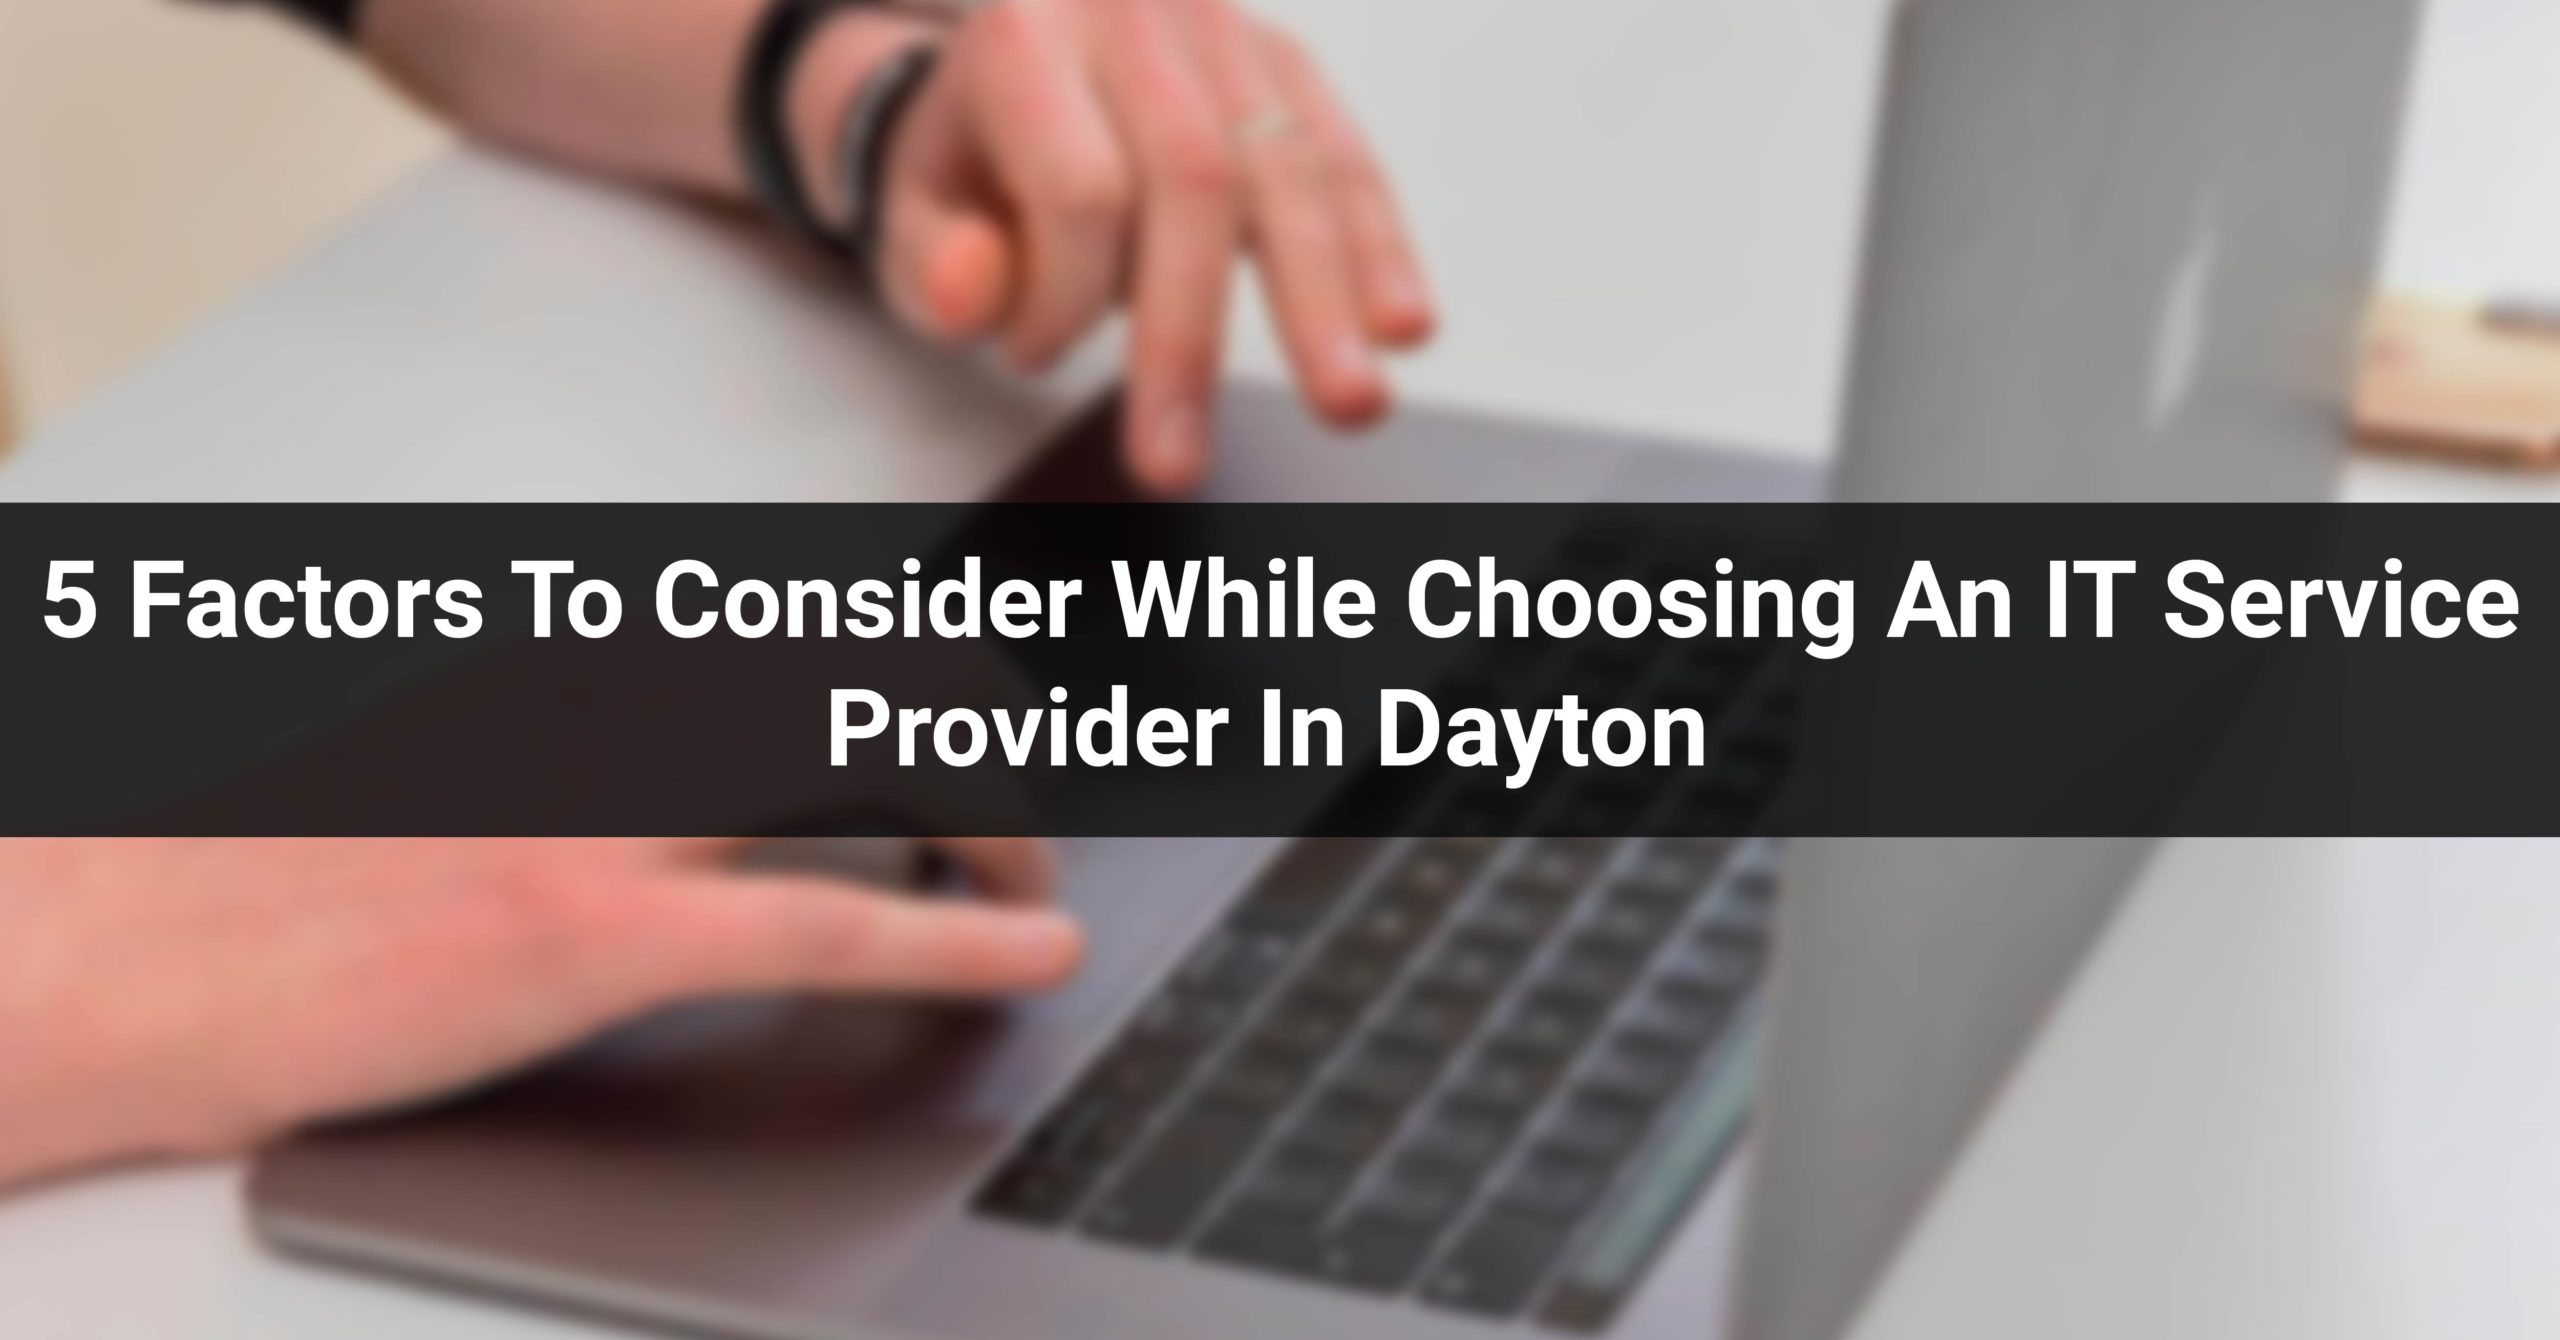 5 Factors To Consider While Choosing An IT Service Provider In Dayton